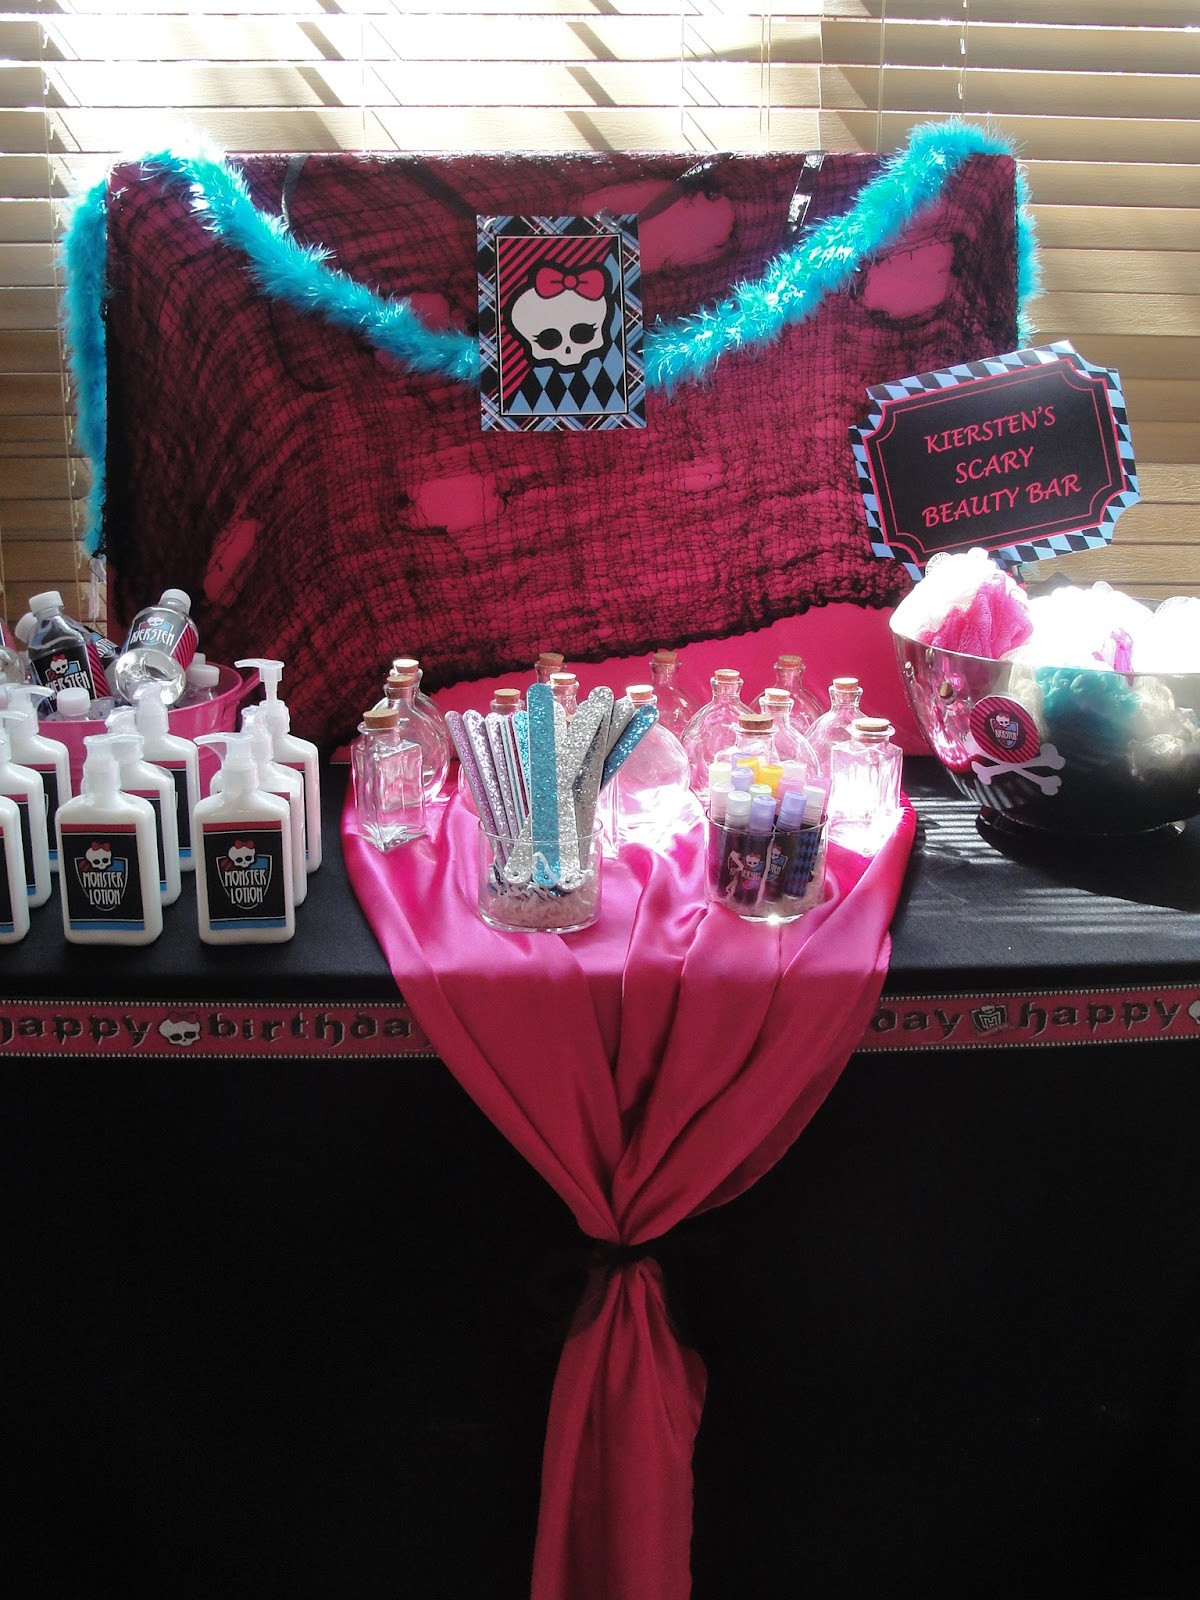 Best ideas about Monster High Birthday Party . Save or Pin My Party Dreamz Monster licious Spa Party Now.